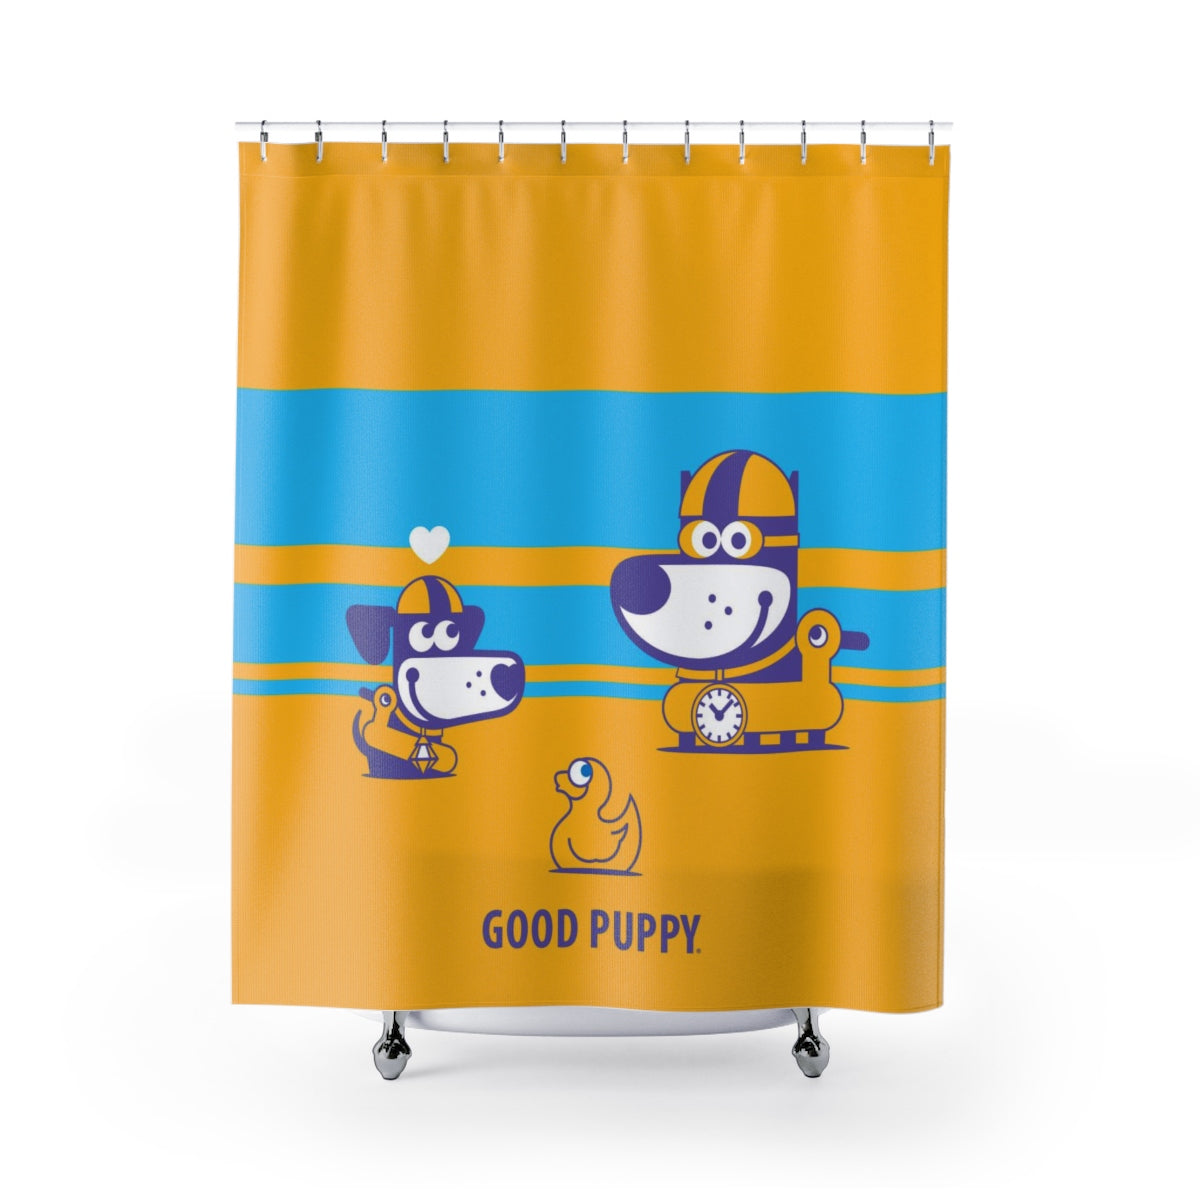 Bath Puppy II . Shower Curtain